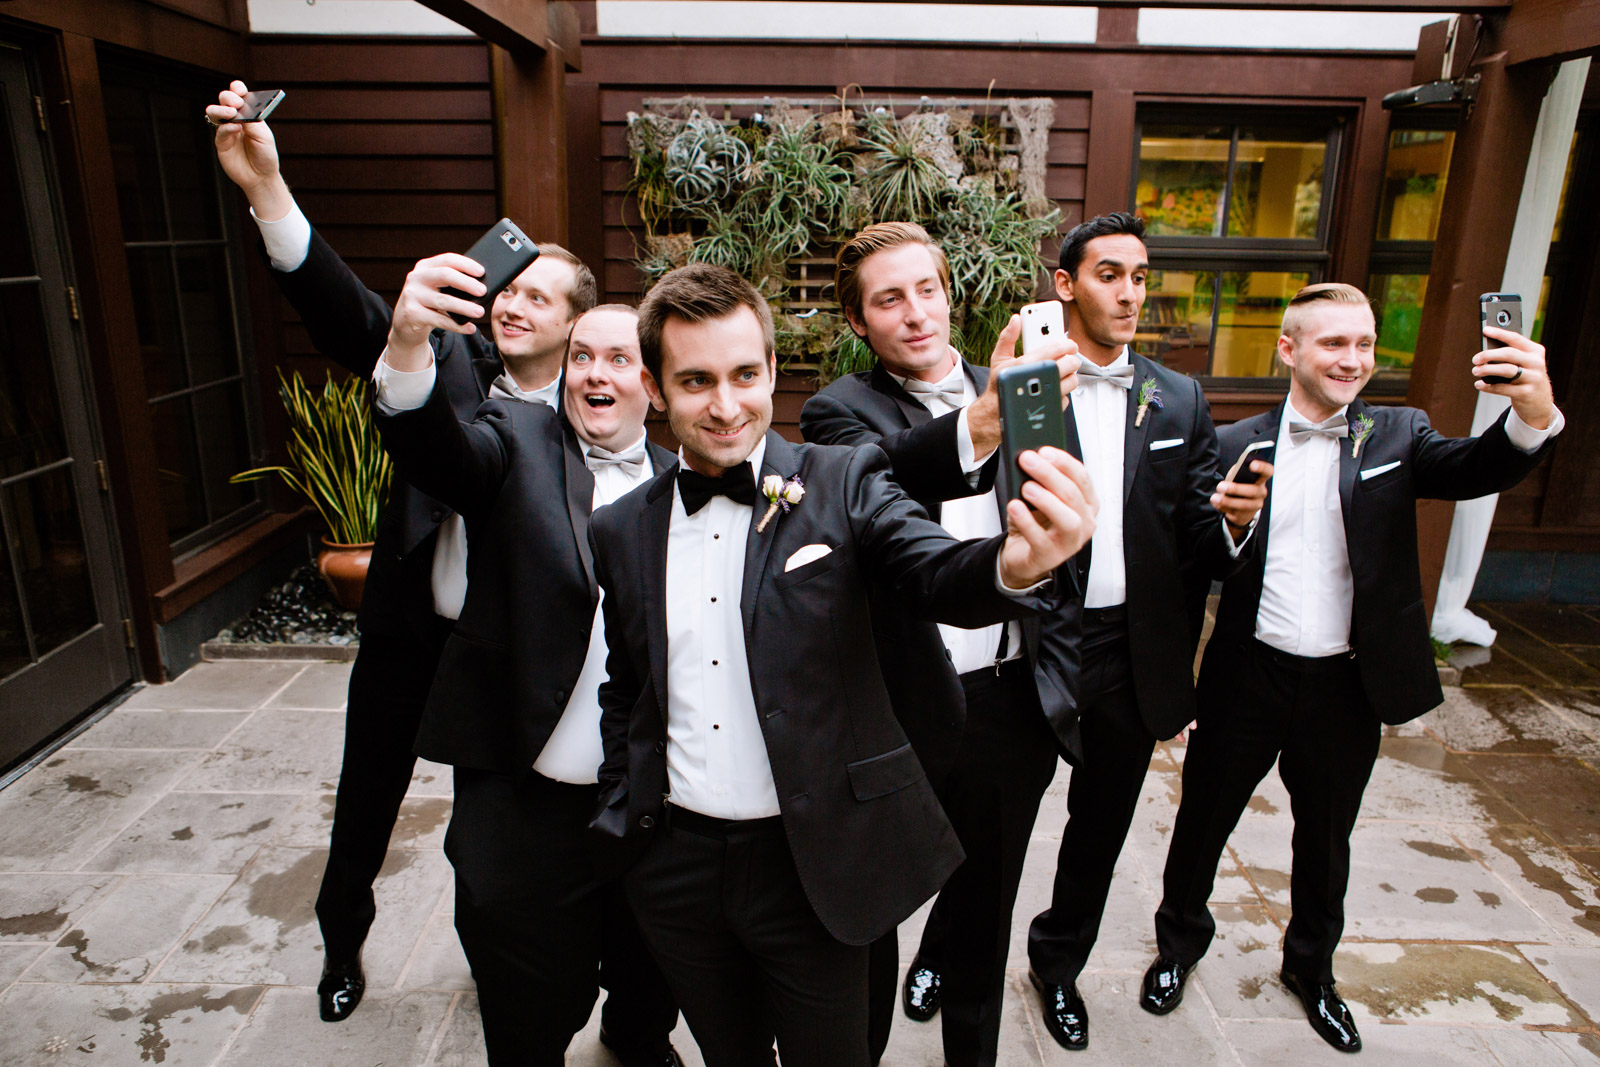 wedding day selfie of the groom and groomsmen taking their own selfies